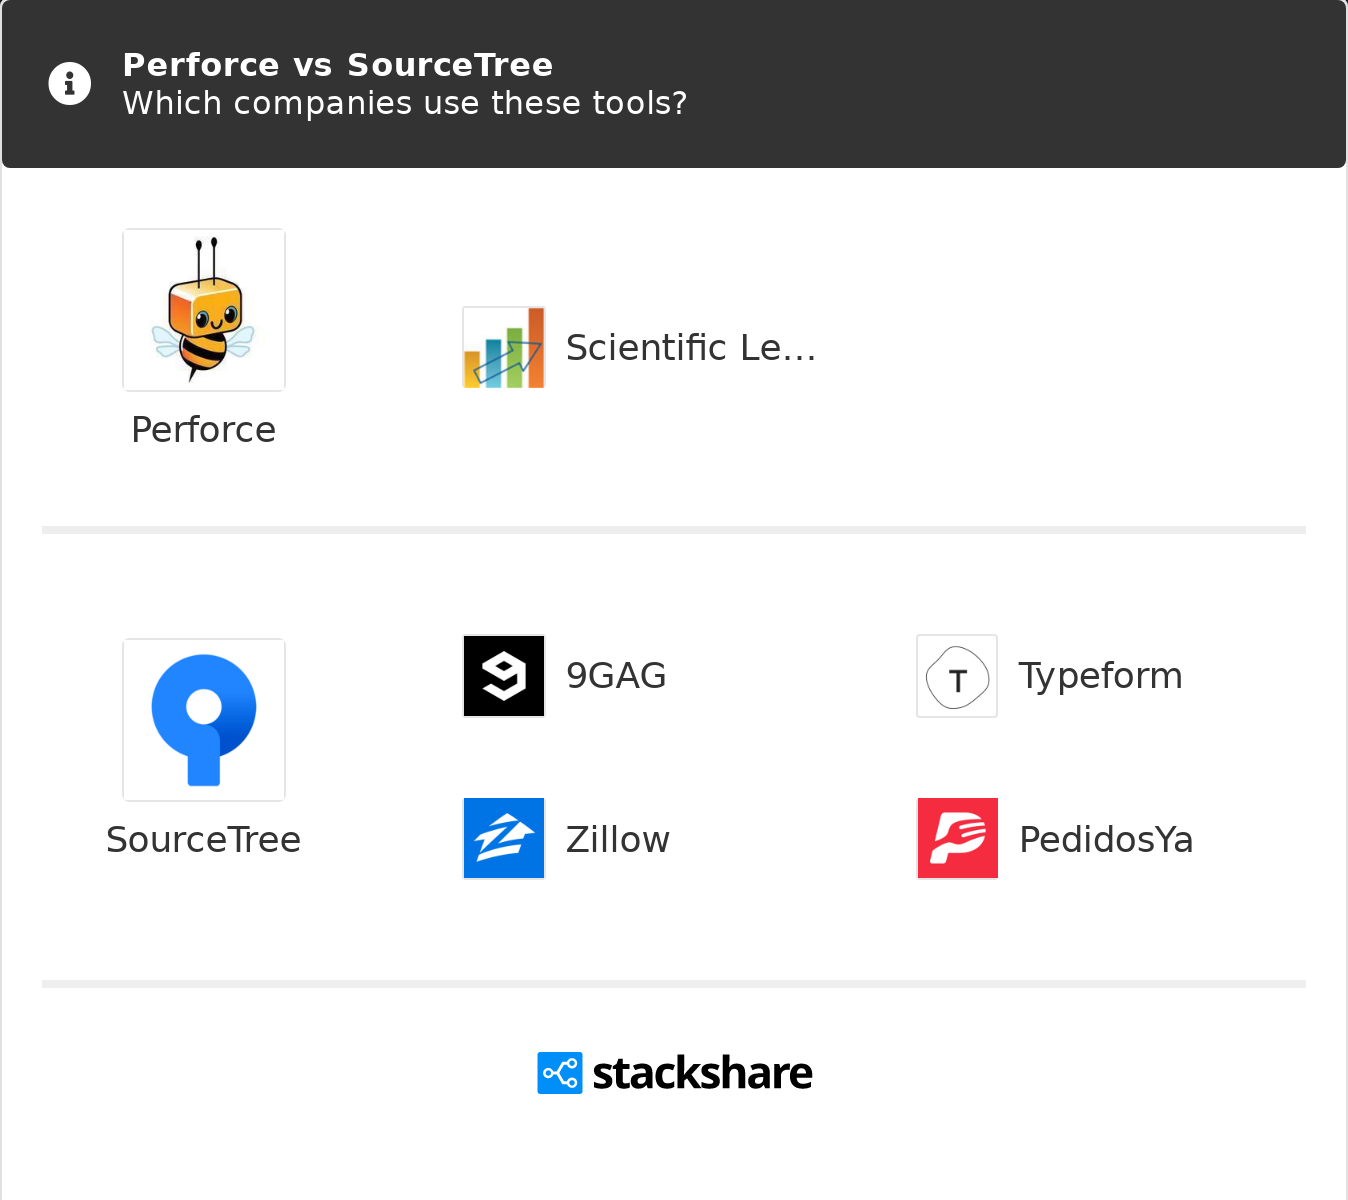 Perforce vs SourceTree | What are the differences?